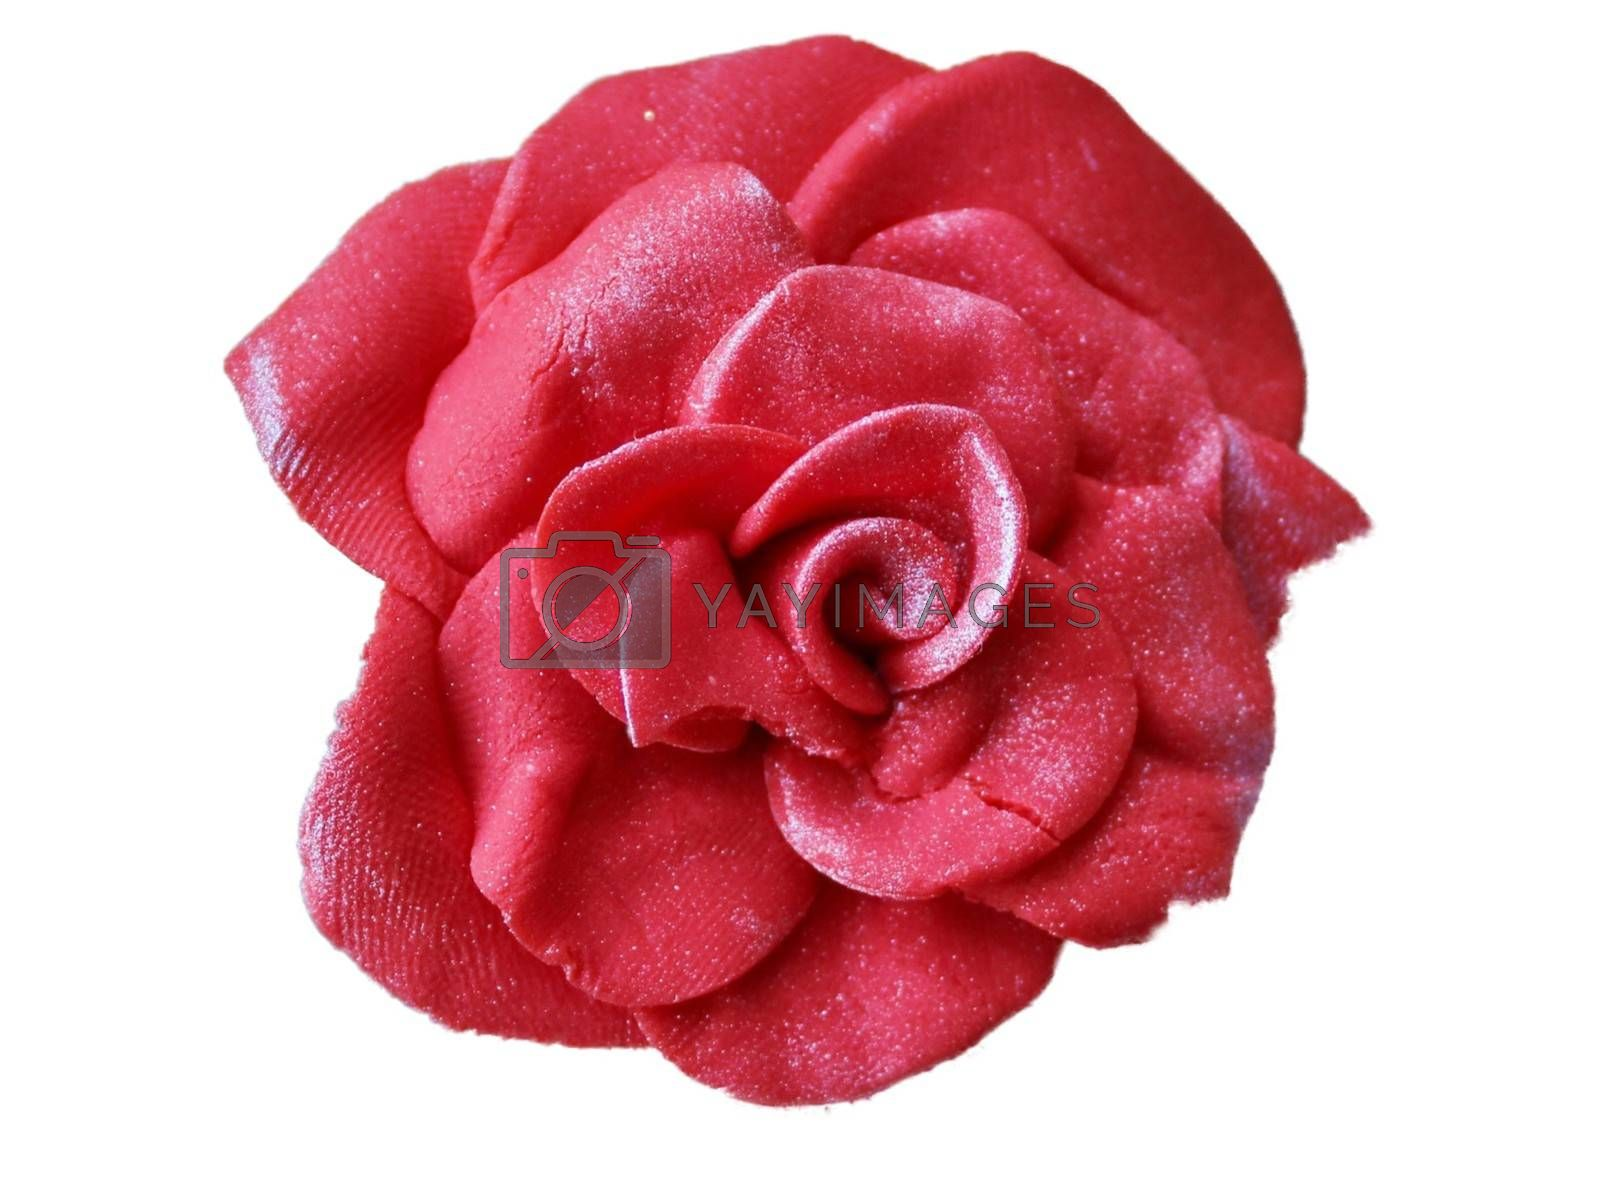 Royalty free image of Soft focus of a pink gum paste candy rose isolate on white background by balage941